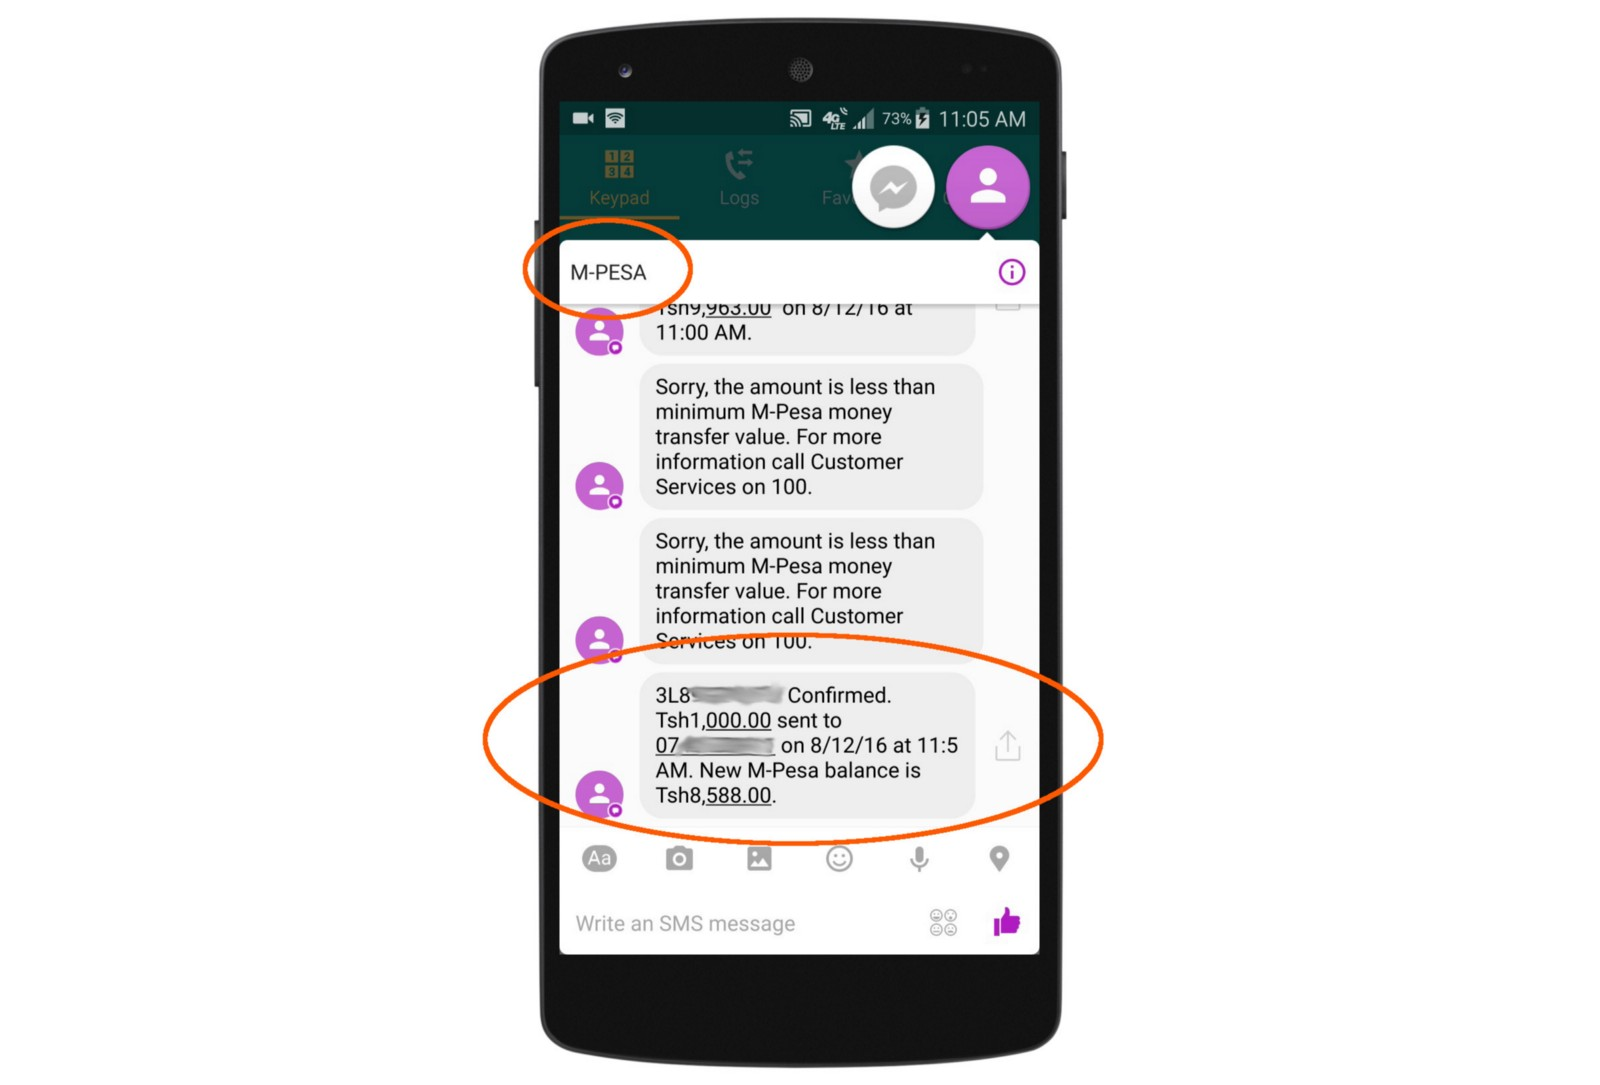 How to get response from ussd code from android? Stack overflow.